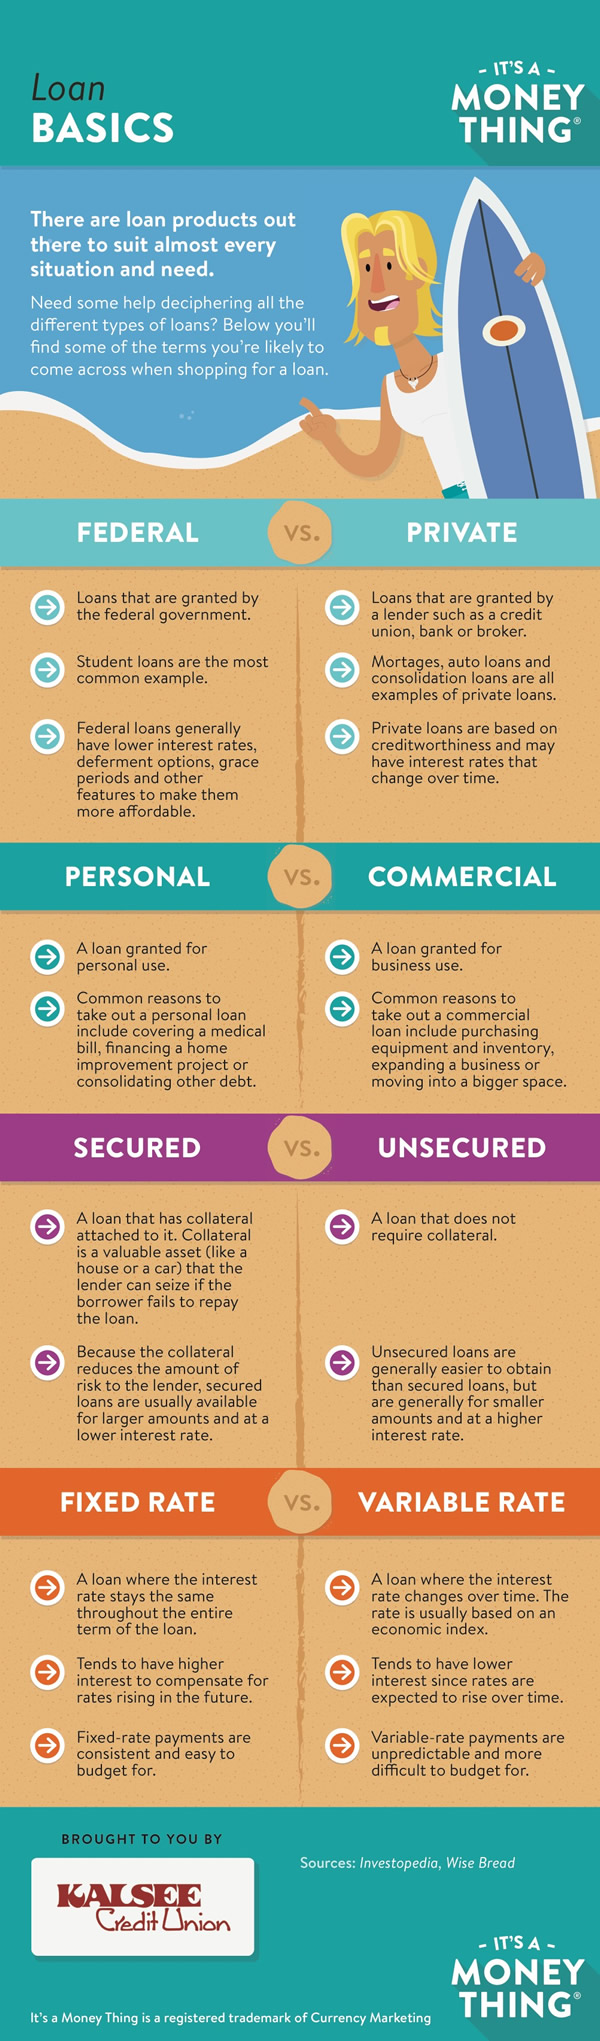 Loan Basics infographic, click for transcription